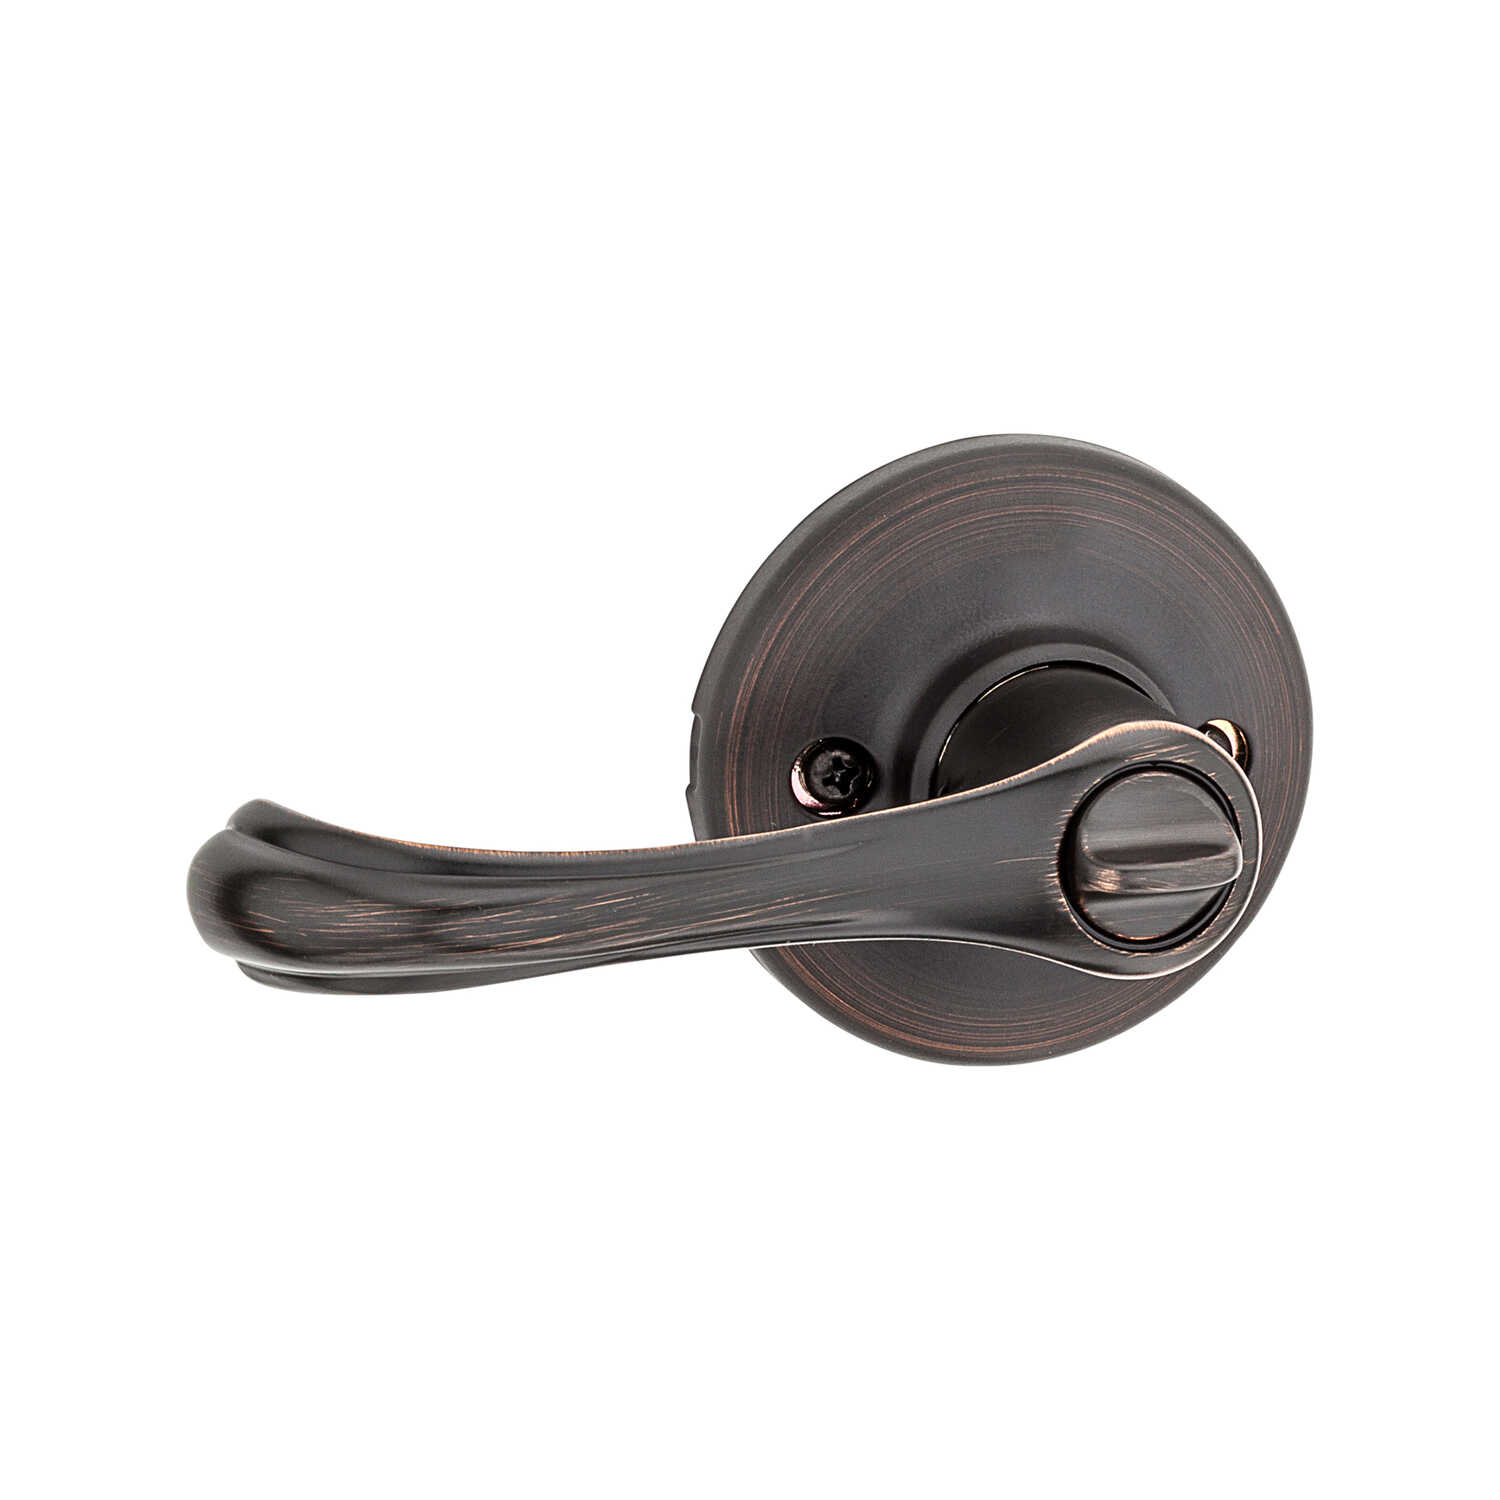 Weiser  Alfini  Venetian Bronze  Privacy Lockset  ANSI/BHMA Grade 3  1-3/4 in.